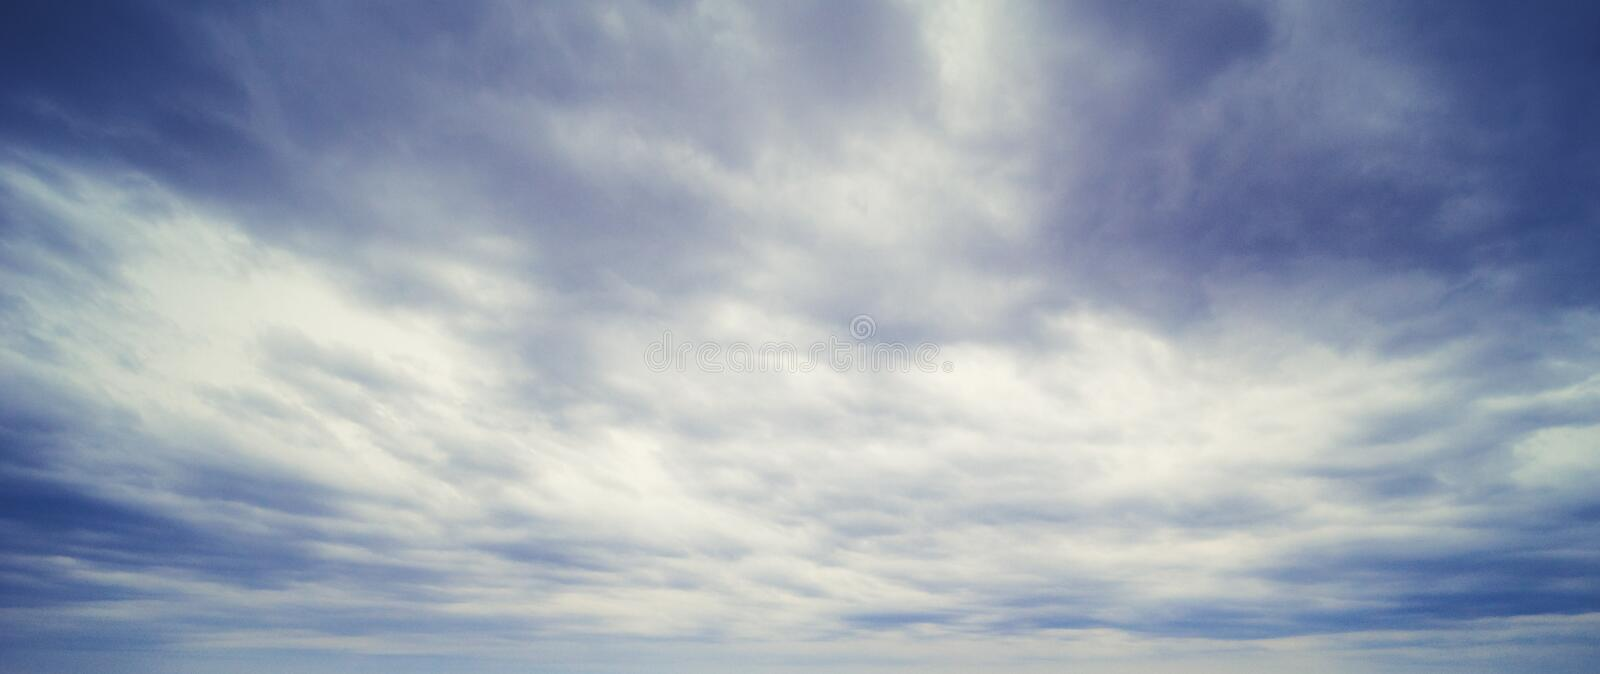 Sky and clouds summer panorama royalty free stock images